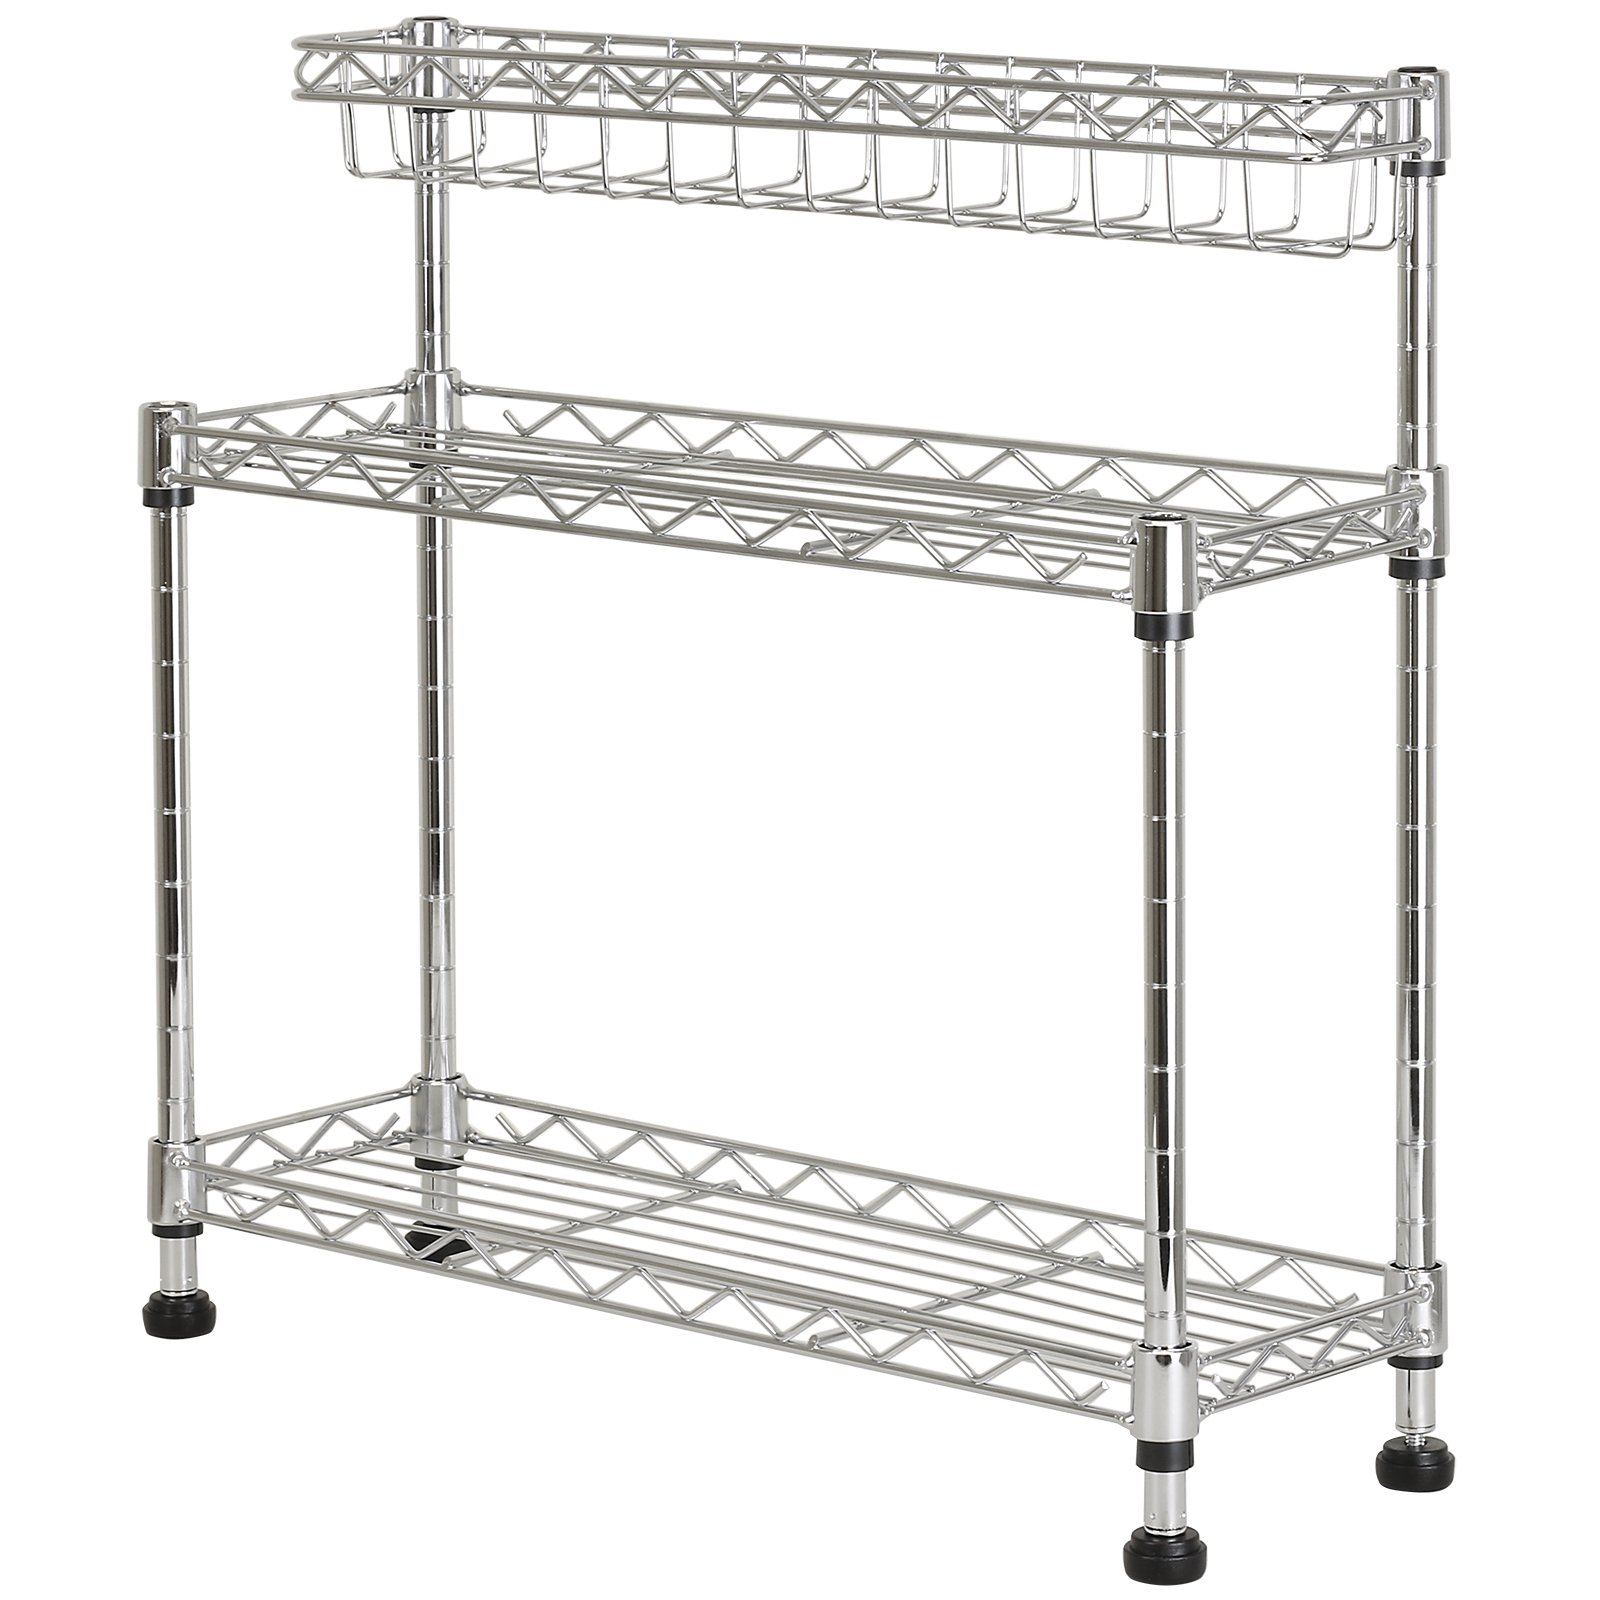 Wire Rack Shelving: Amazon.co.uk